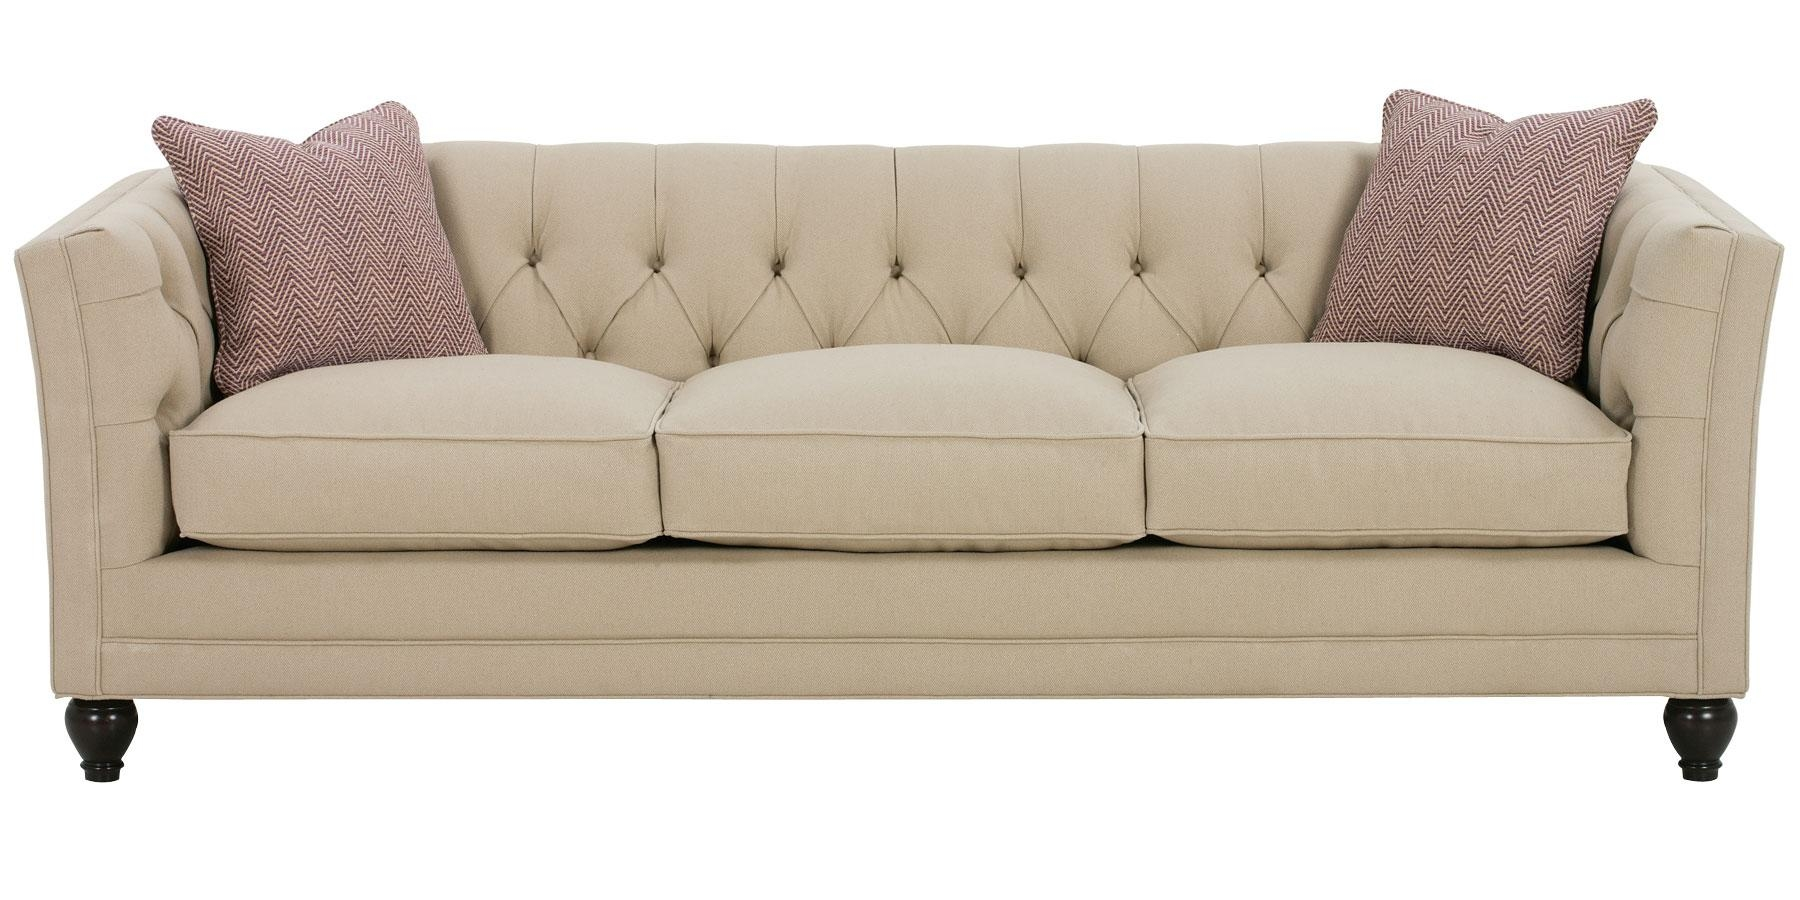 Fabric Upholstered Sofas And Chairs | Club Furniture In Fabric Sofas (View 4 of 20)